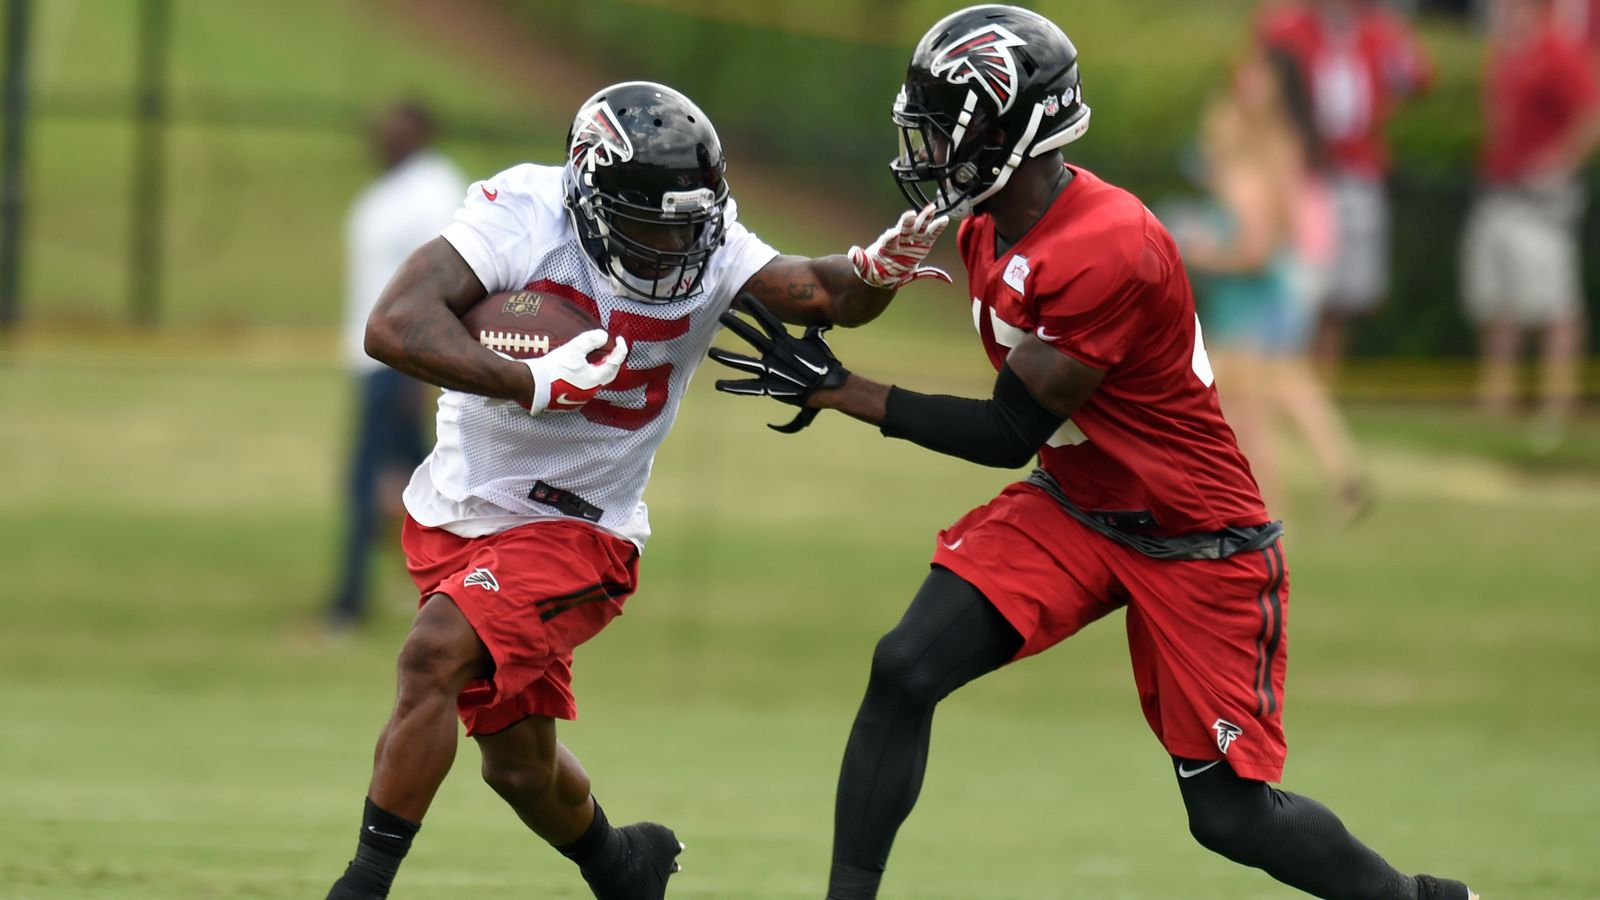 Nike jerseys for Cheap - Falcons add WR Aldrick Robinson, S Damian Parms, CB DeMarcus Van ...